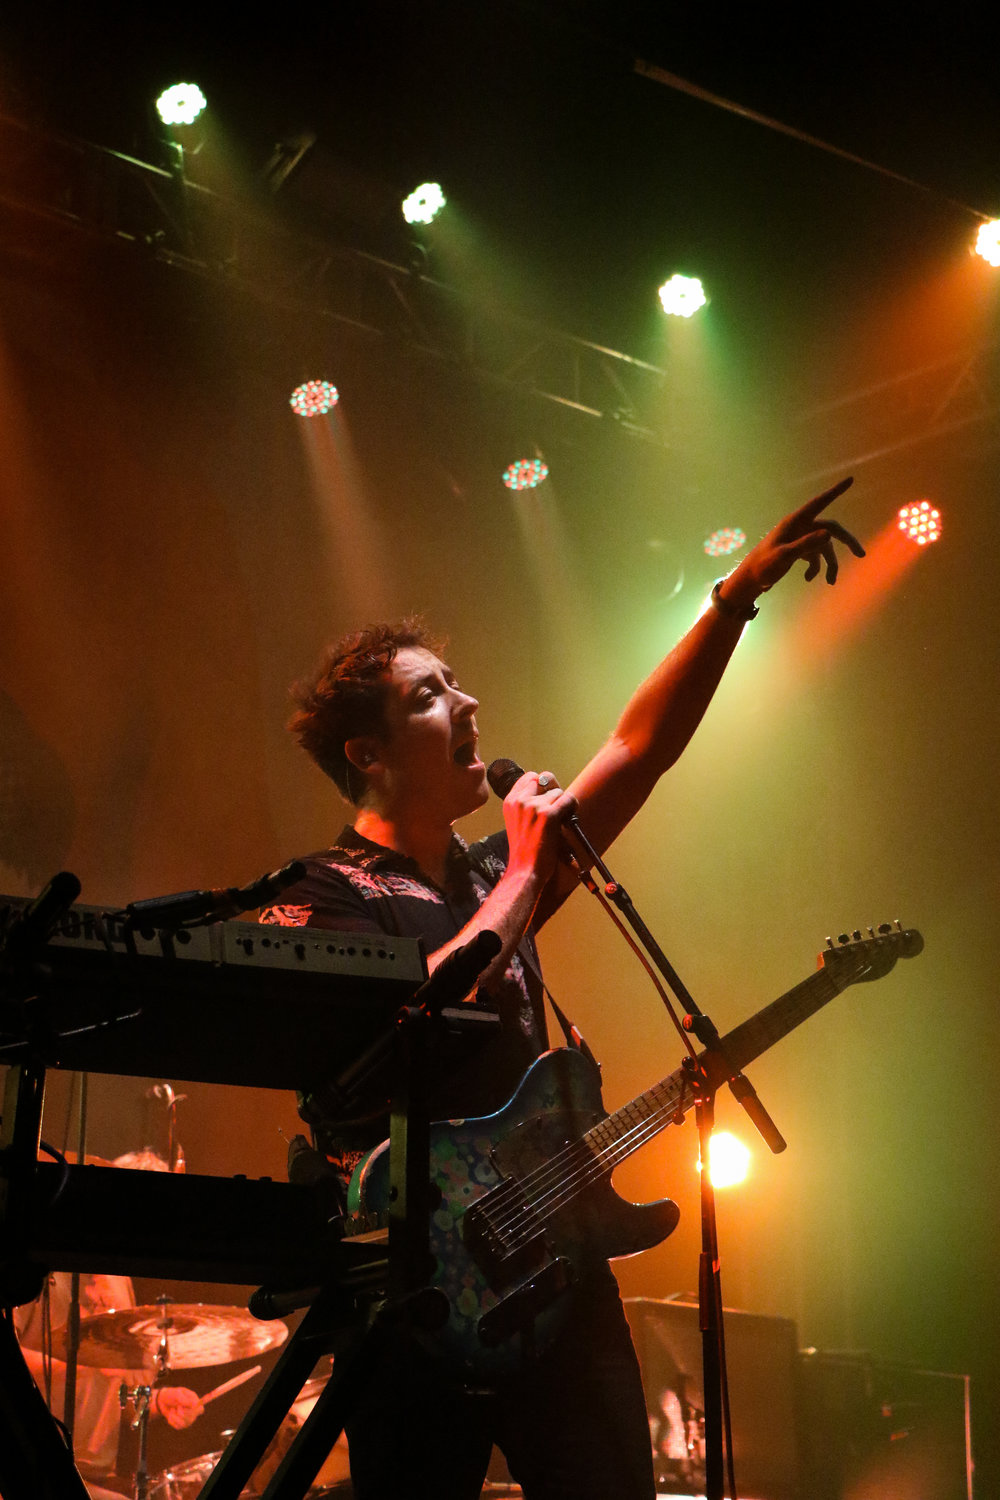 Lead singer, Matthew Murphy's silhouette stands out against the colorful stage lights.